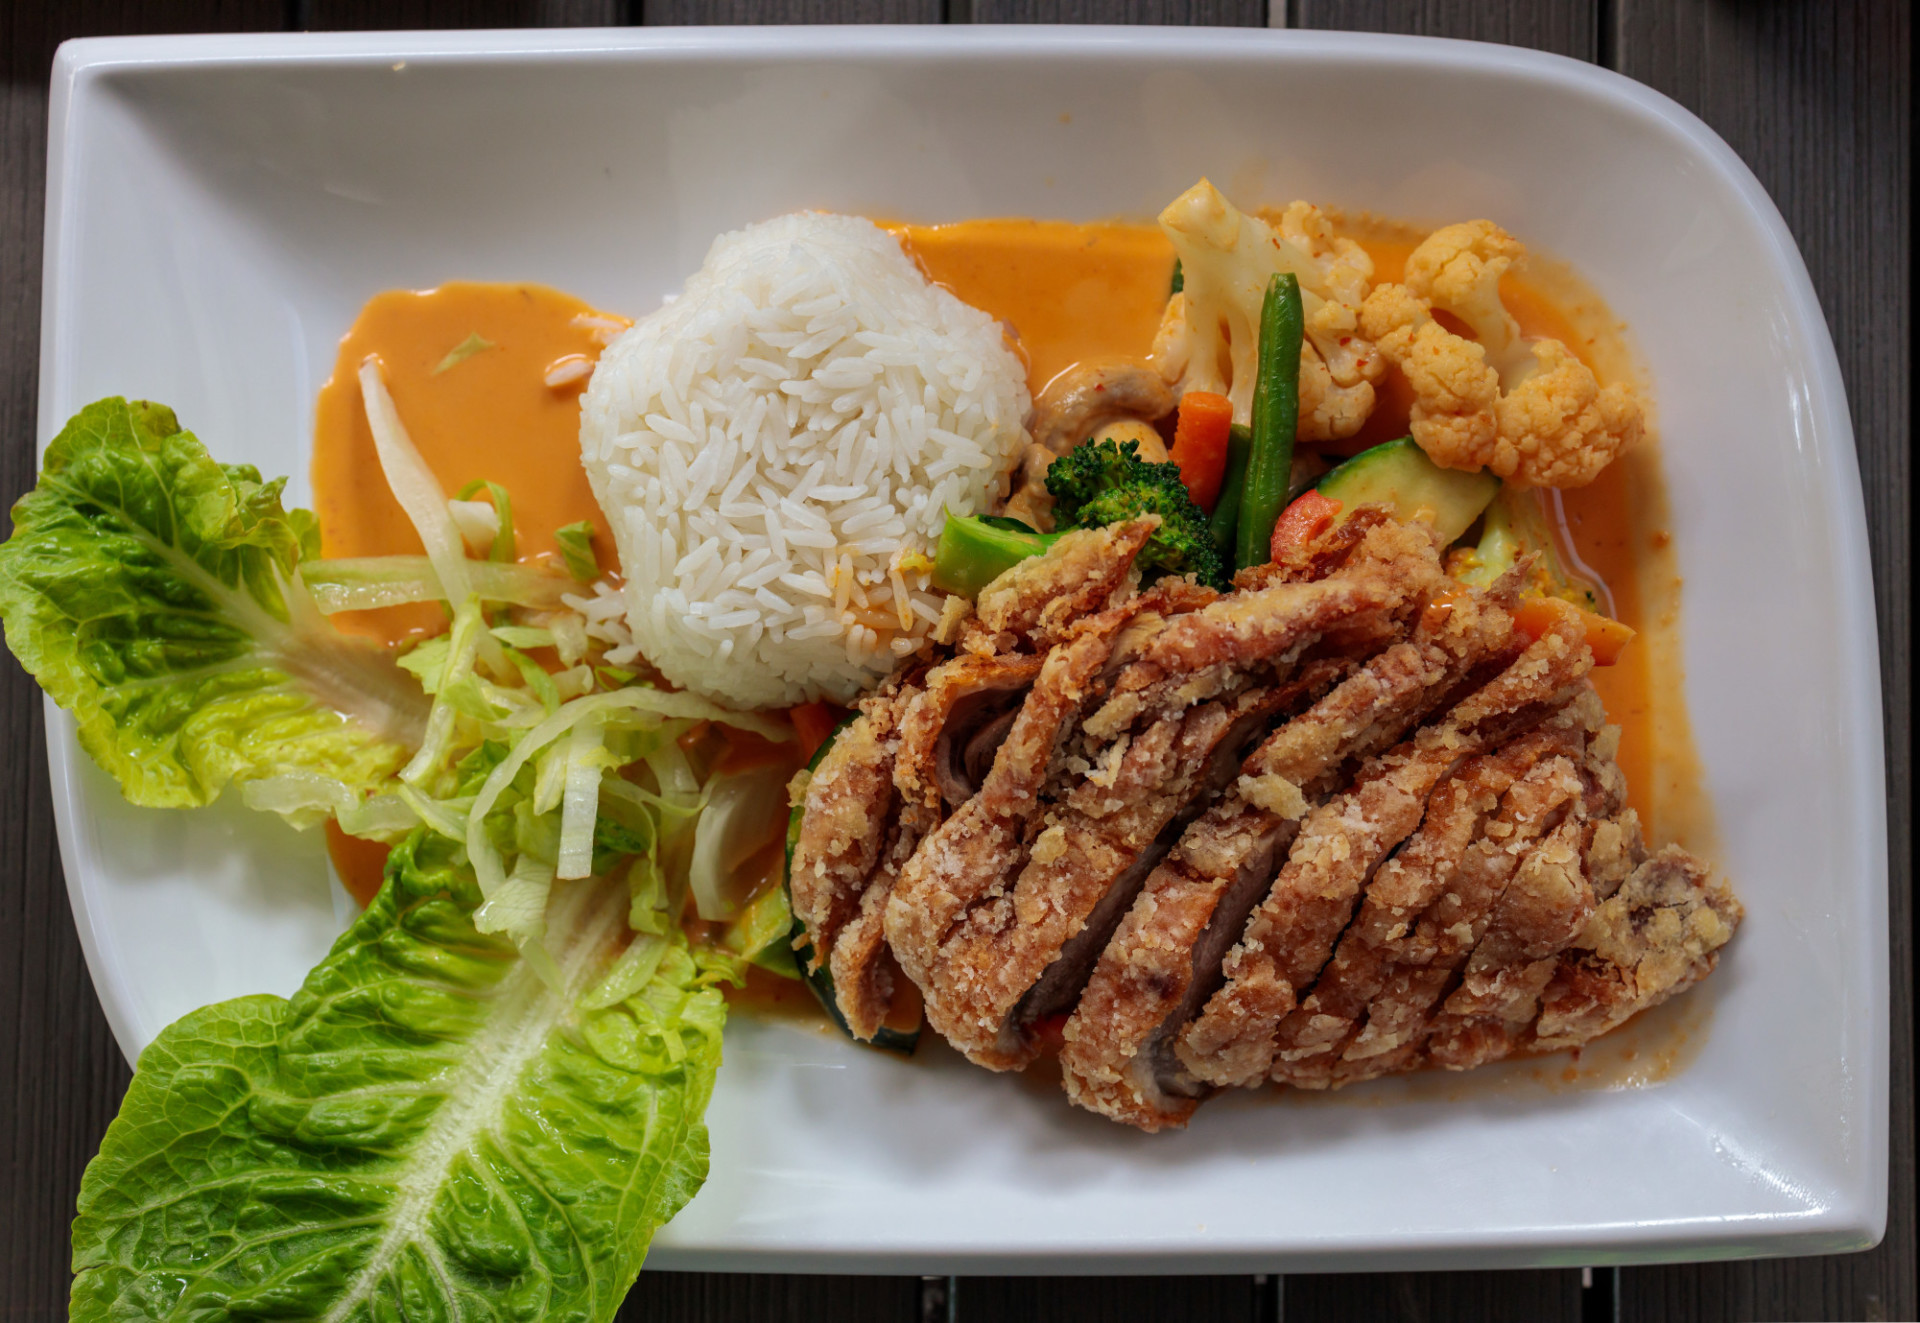 Asian crispy duck with vegetables, rice and curry sauce